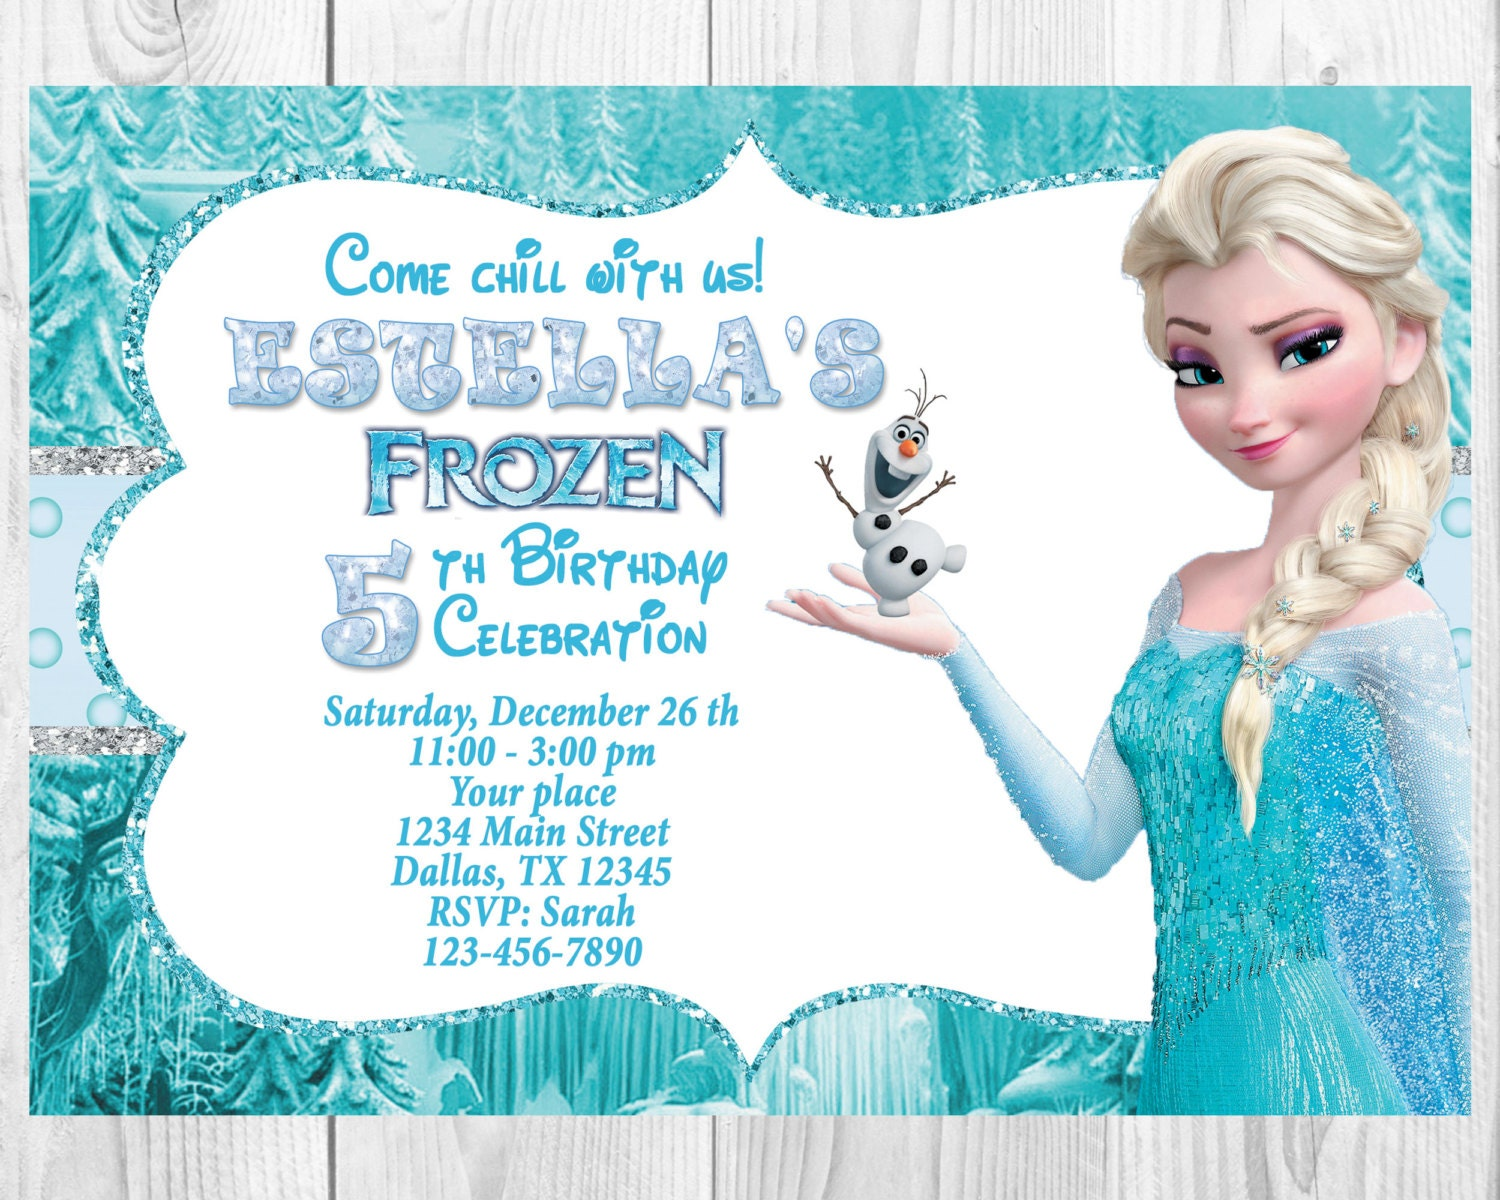 Frozen Birthday Invitation Elsa Frozen Invitation Printable | Etsy